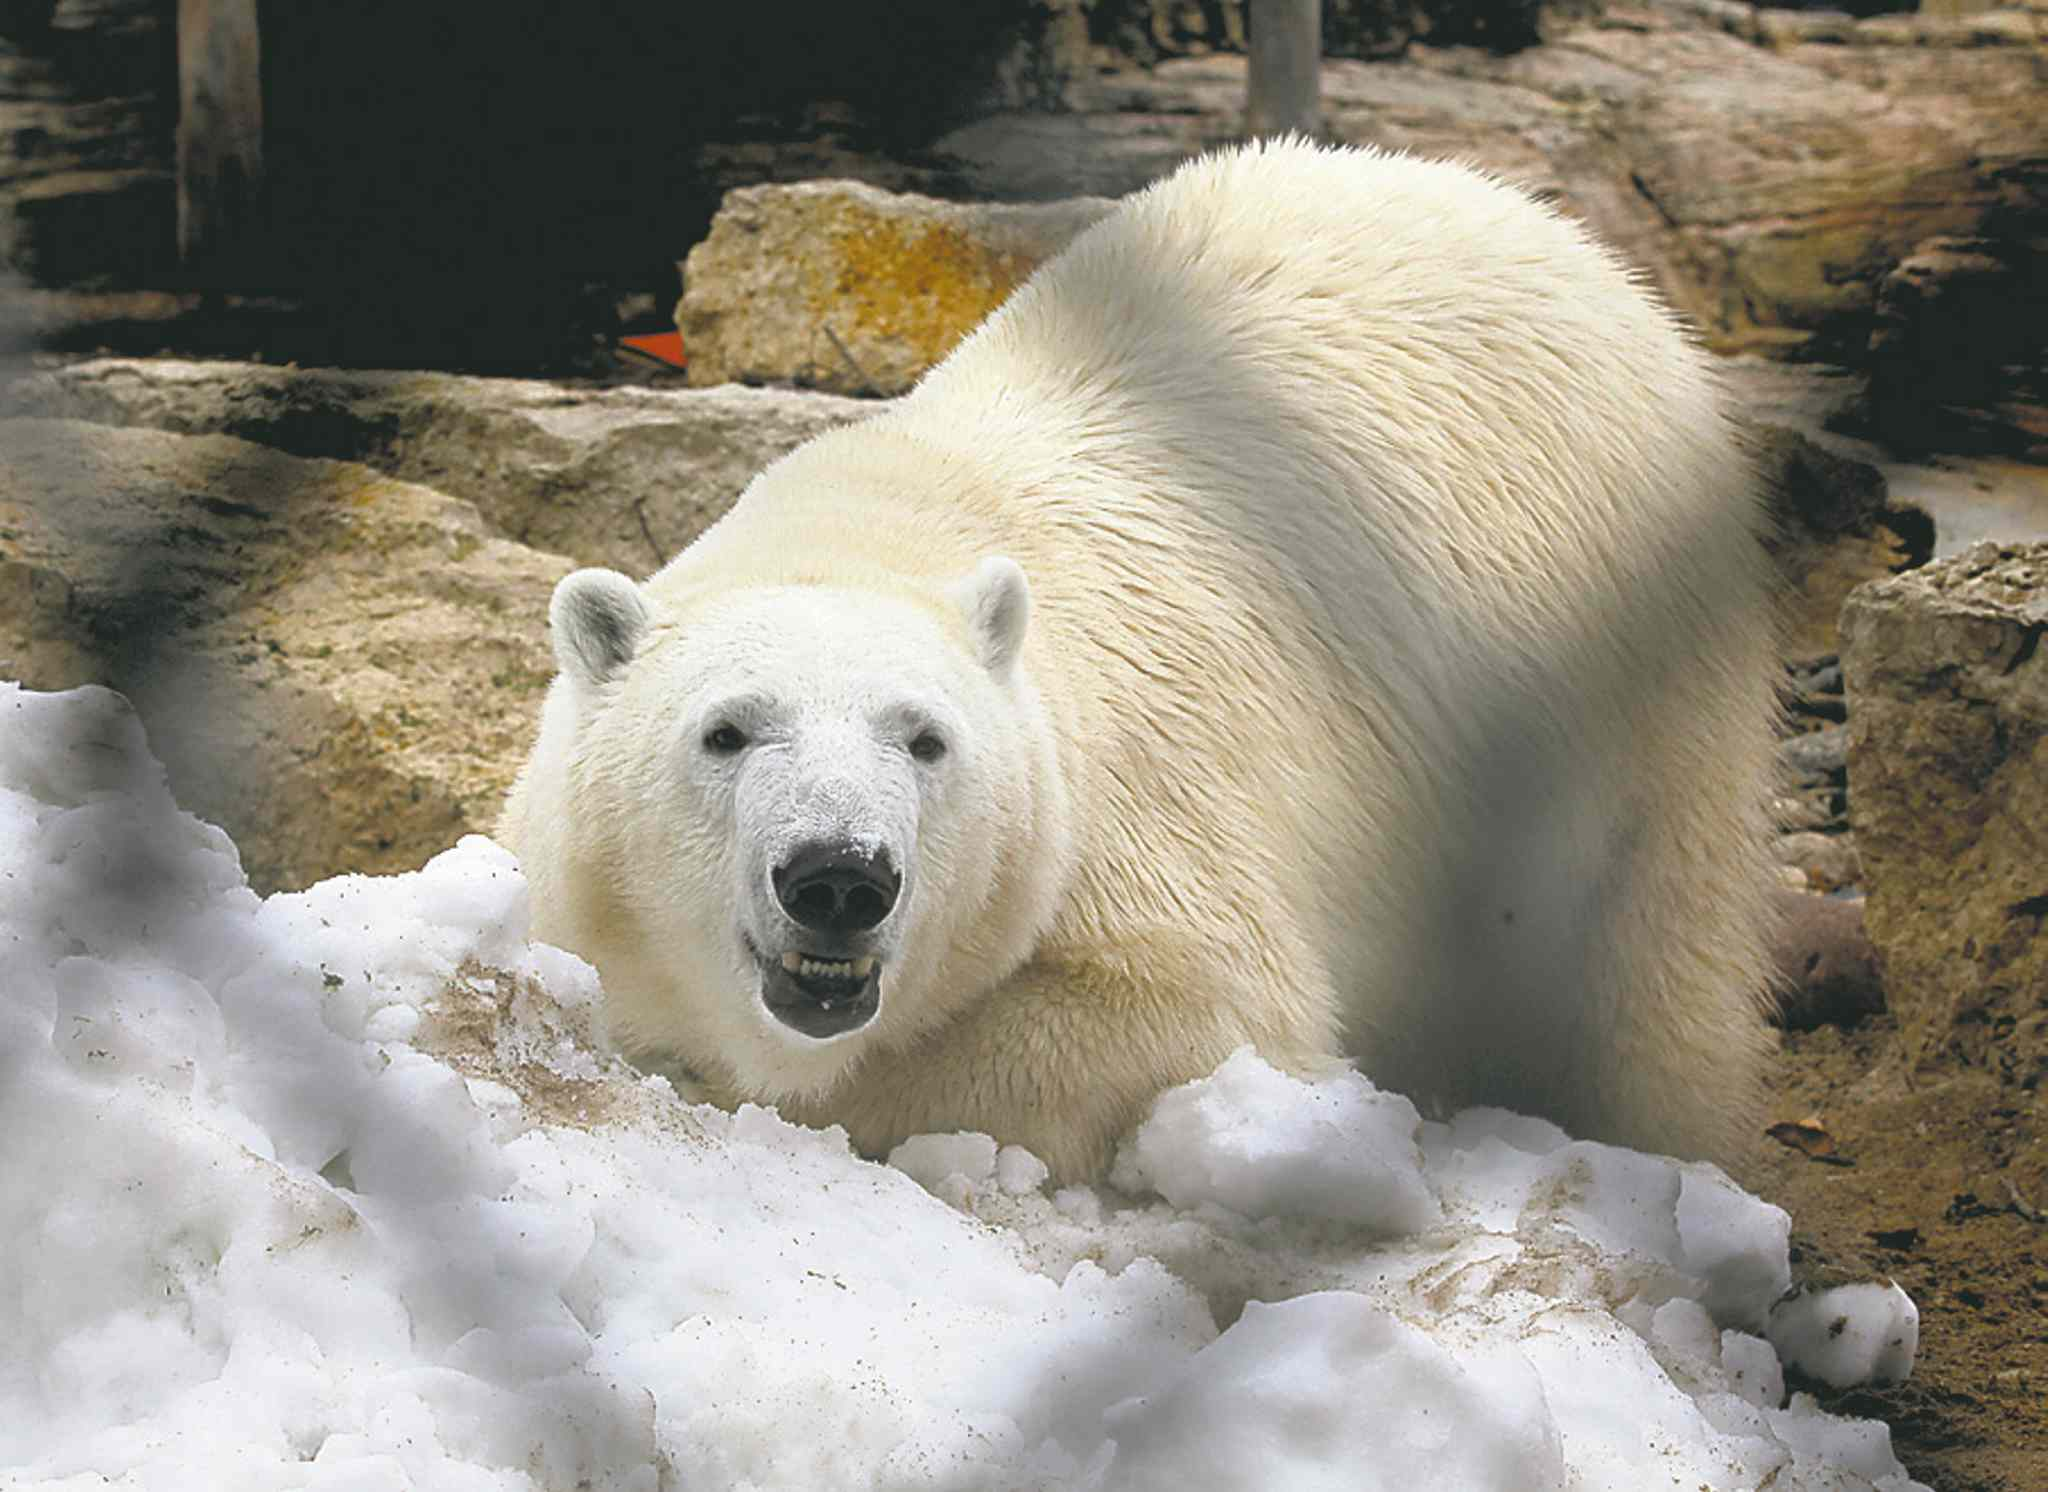 Hudson the polar bear will make his home at the Journey to Churchill exhibit at the Assiniboine Park zoo.